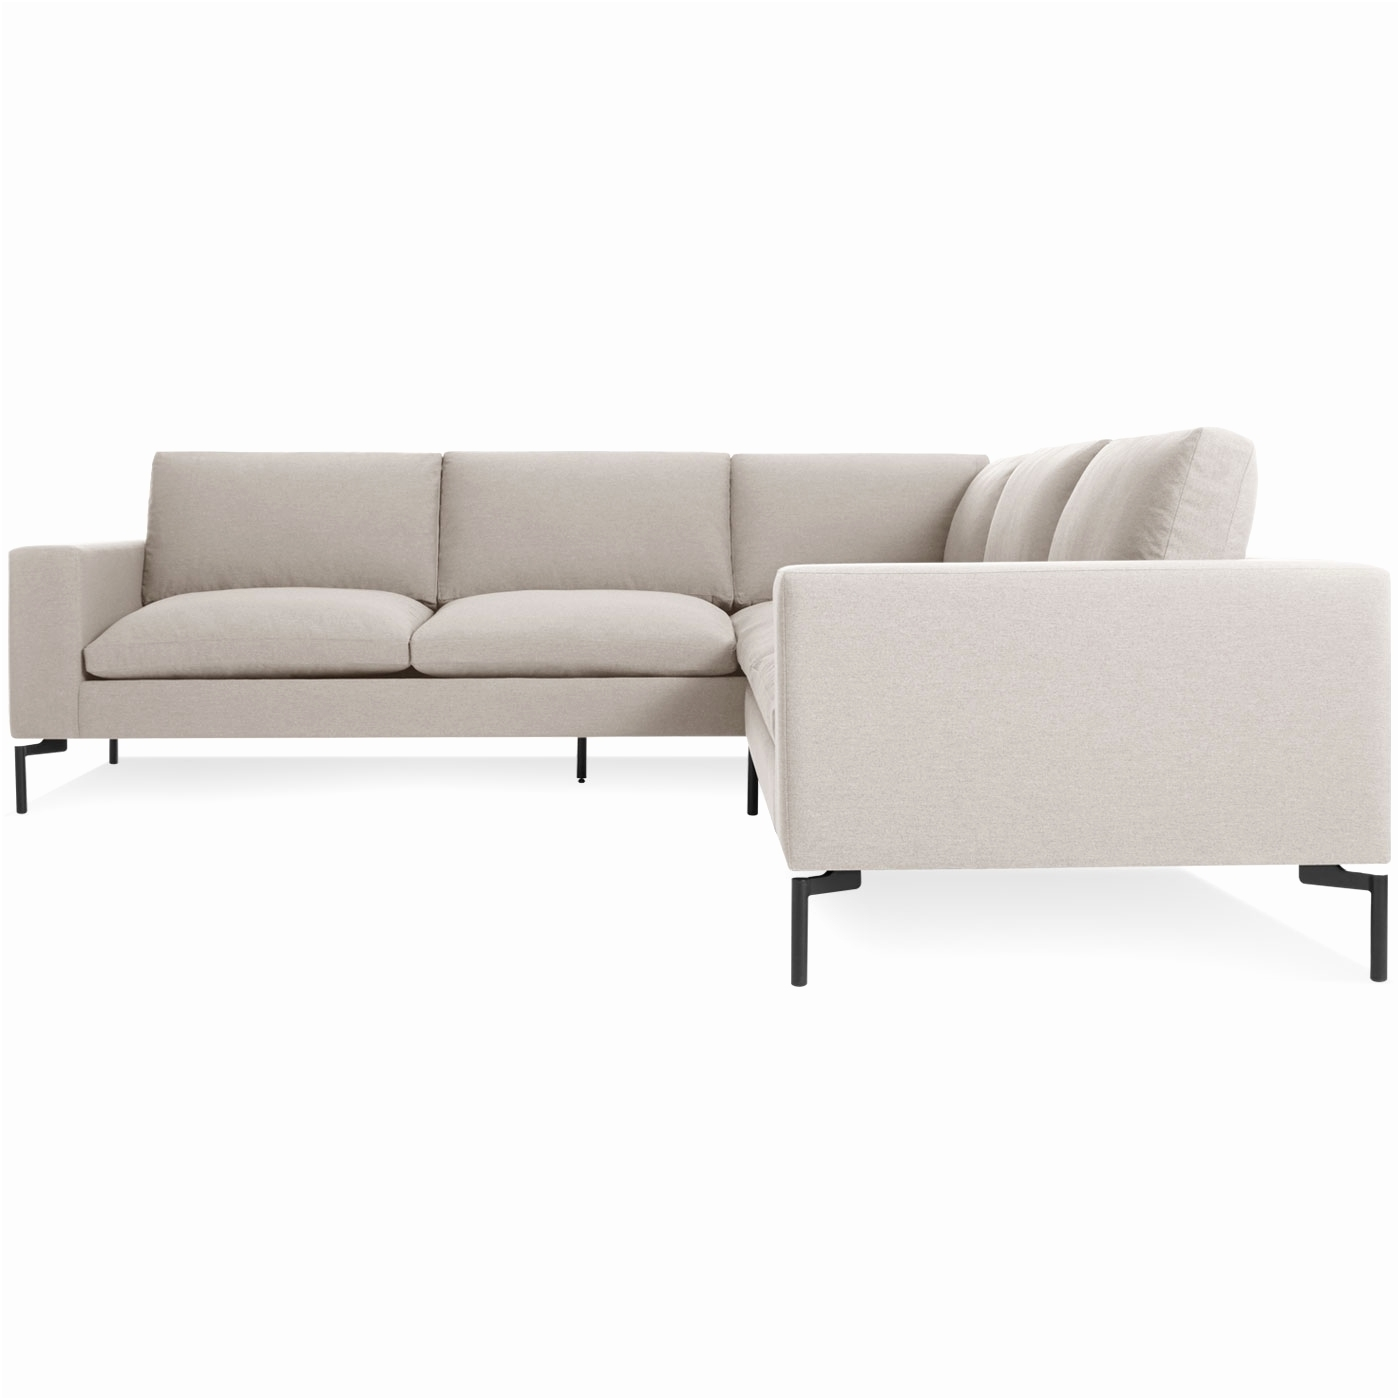 Popular Small Sectional Sofas Regarding Living Room : Best Small Modern Sectionals Sectional Sofa Bed (View 7 of 15)